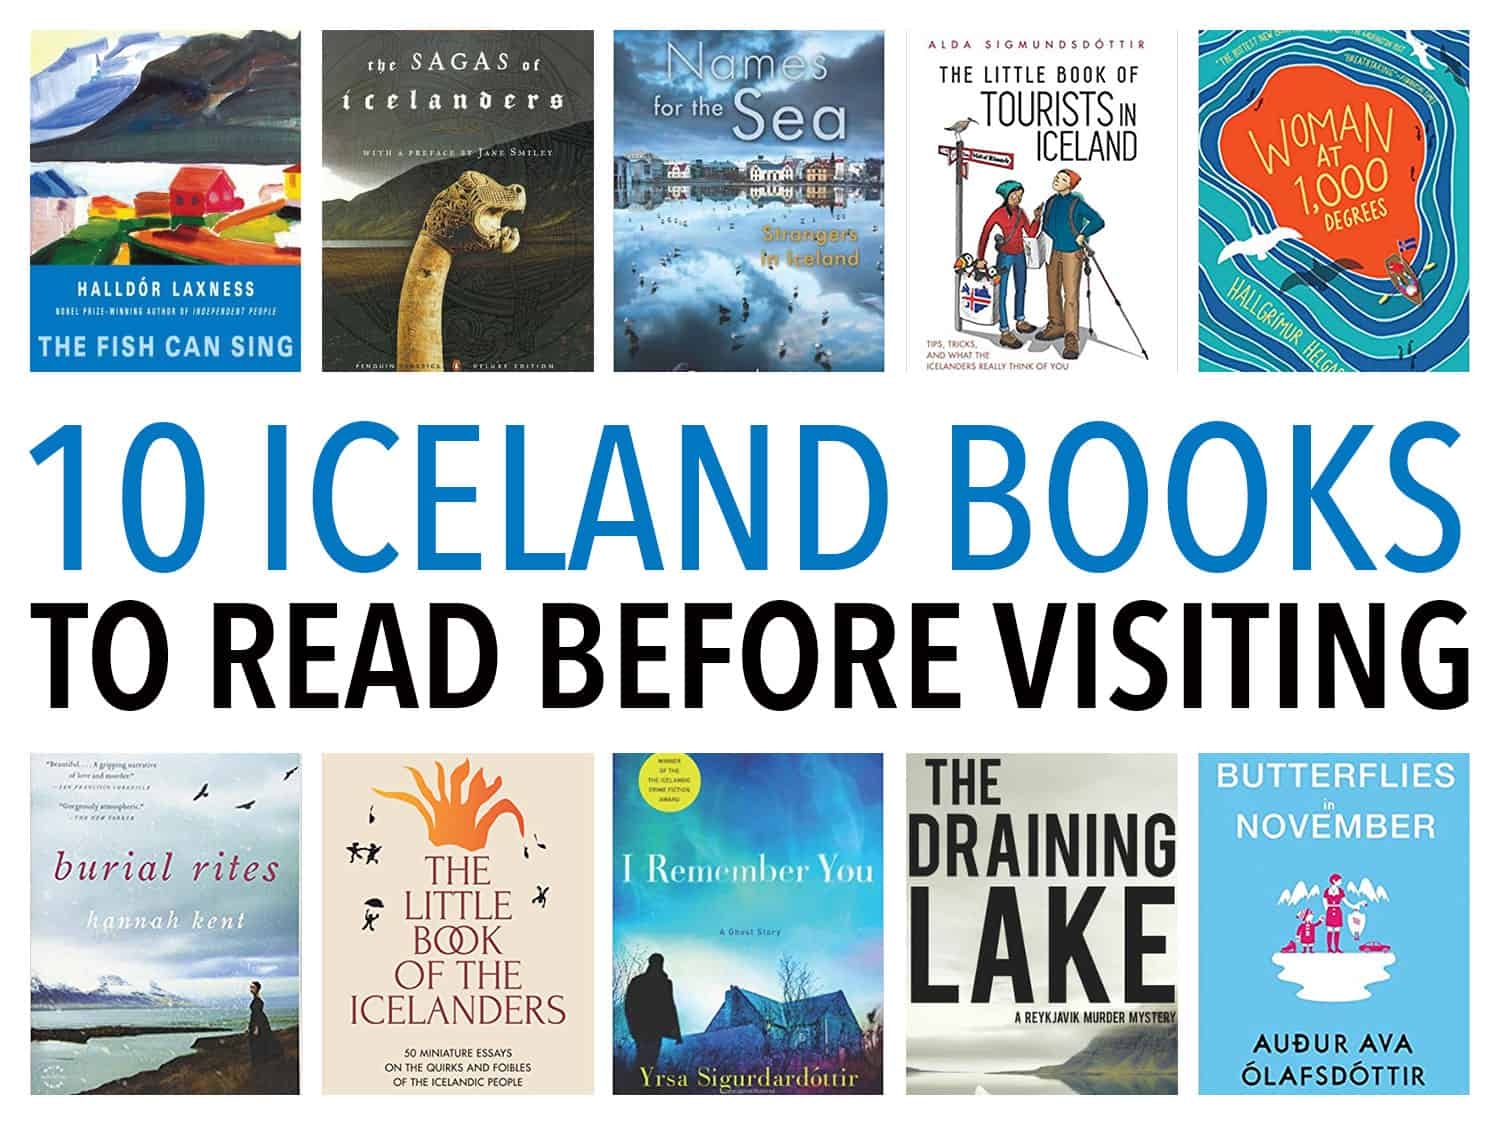 The best Iceland books to read before your visit including non-fiction travel tips, classic Icelandic novels and sagas, and modern Icelandic fiction